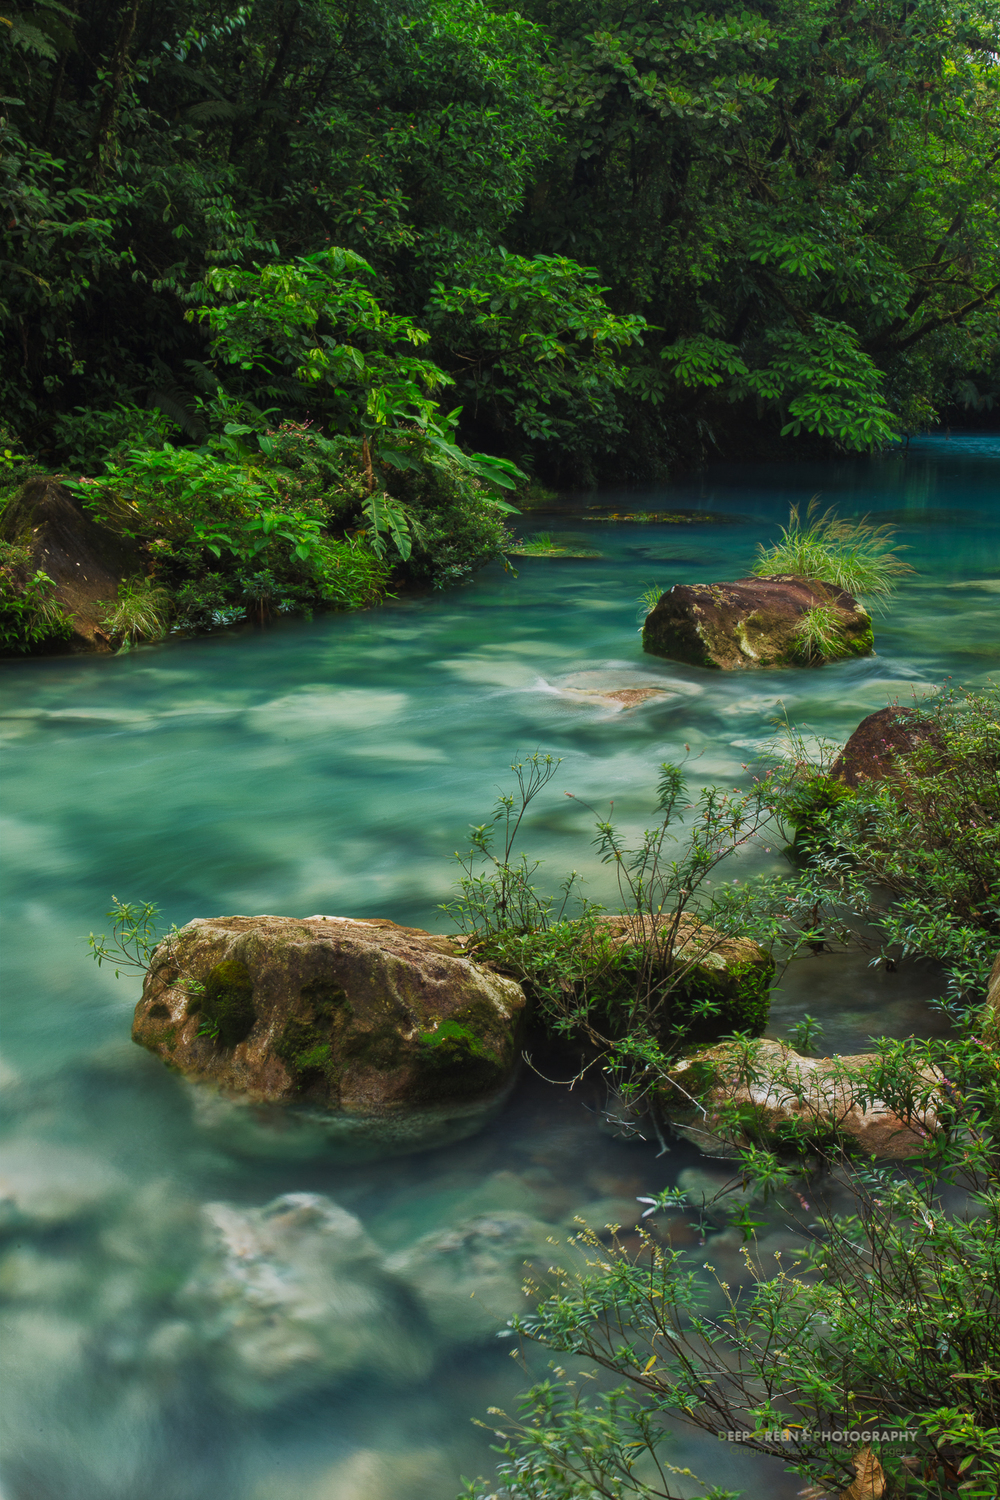 Costa Rica's Rio Celeste, in the Tenorio Volcano National Park, is famous for its sapphire blue waters which result from a mixture of copper, sulphur, and silica colloids.